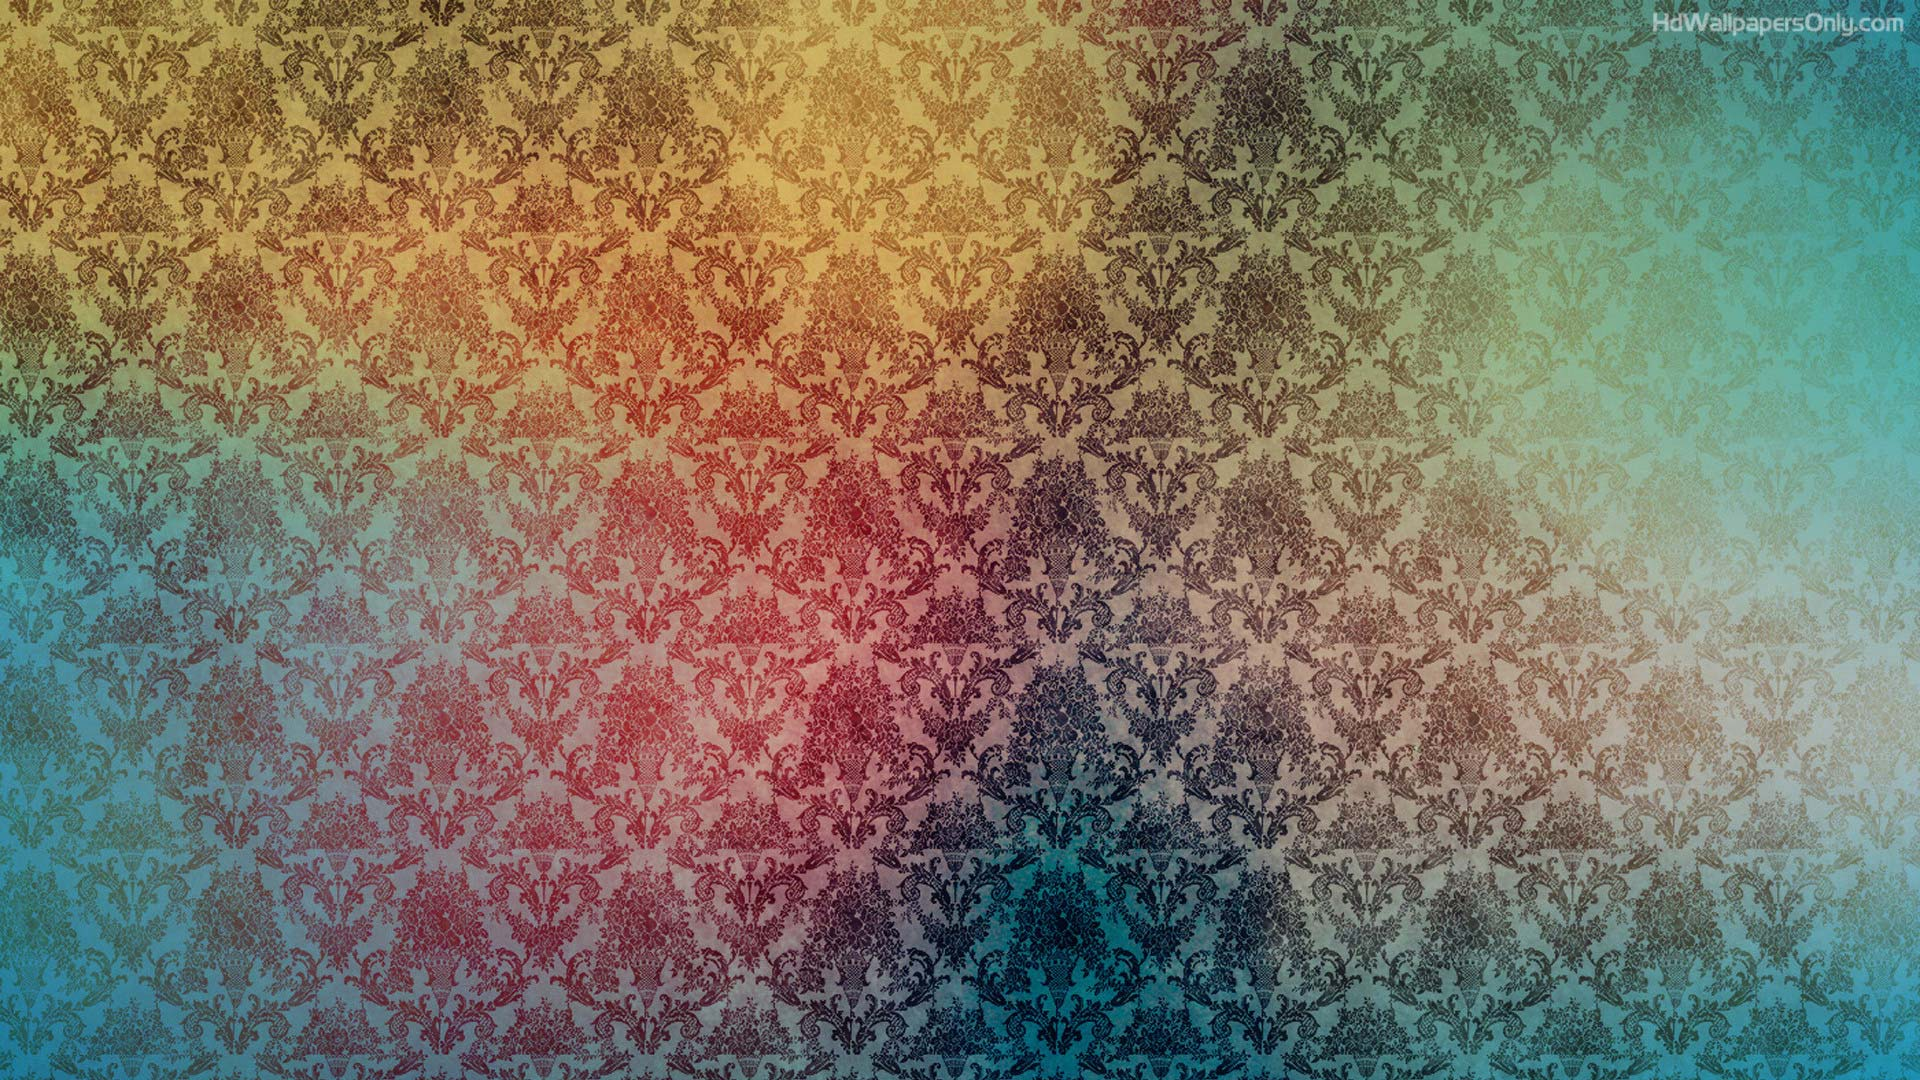 retro colorful background hd - photo #2